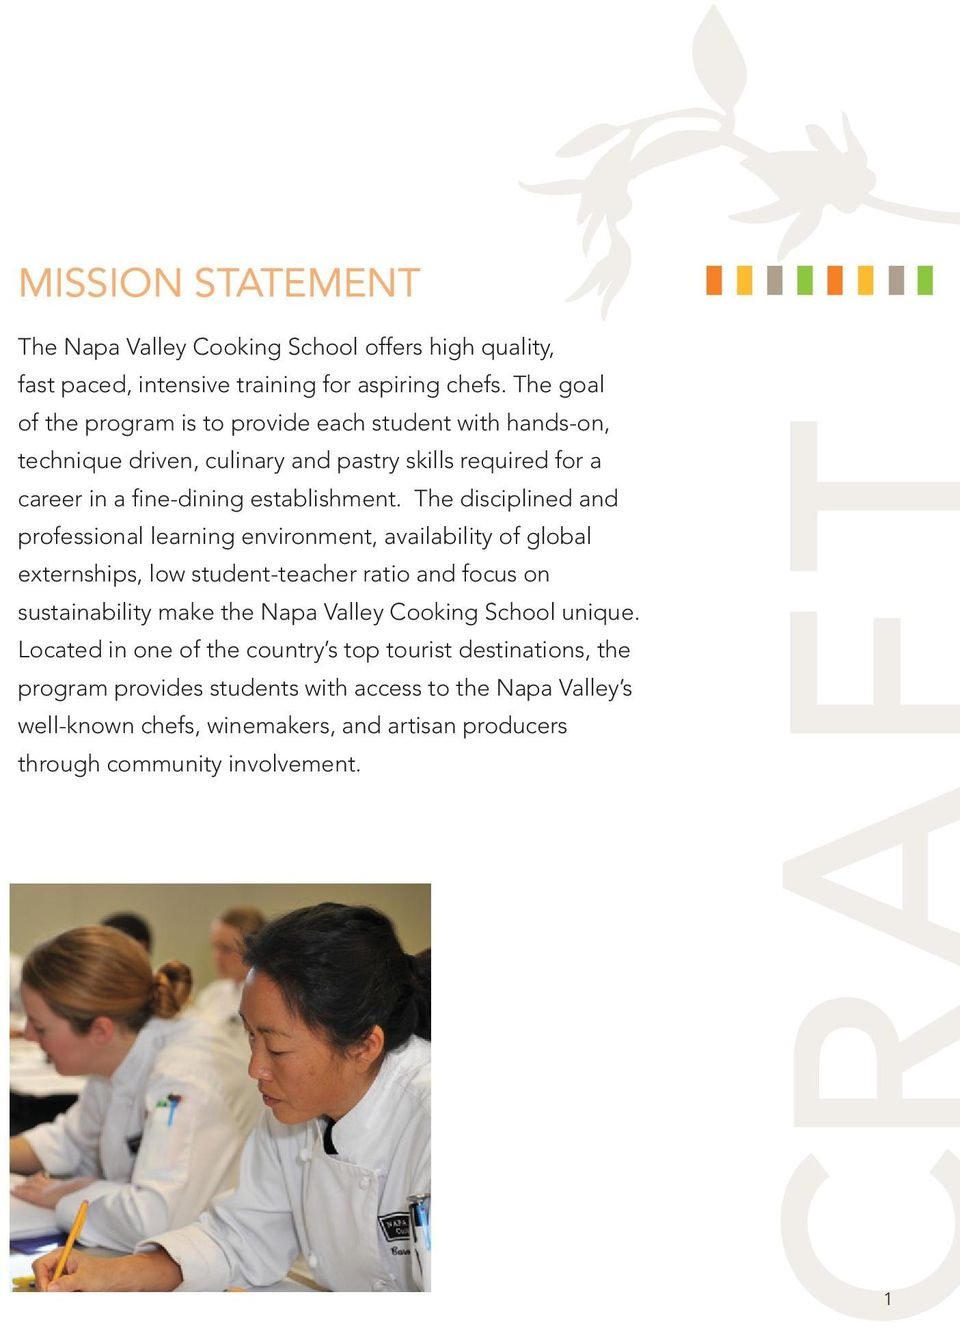 The disciplined and professional learning environment, availability of global externships, low student-teacher ratio and focus on sustainability make the Napa Valley